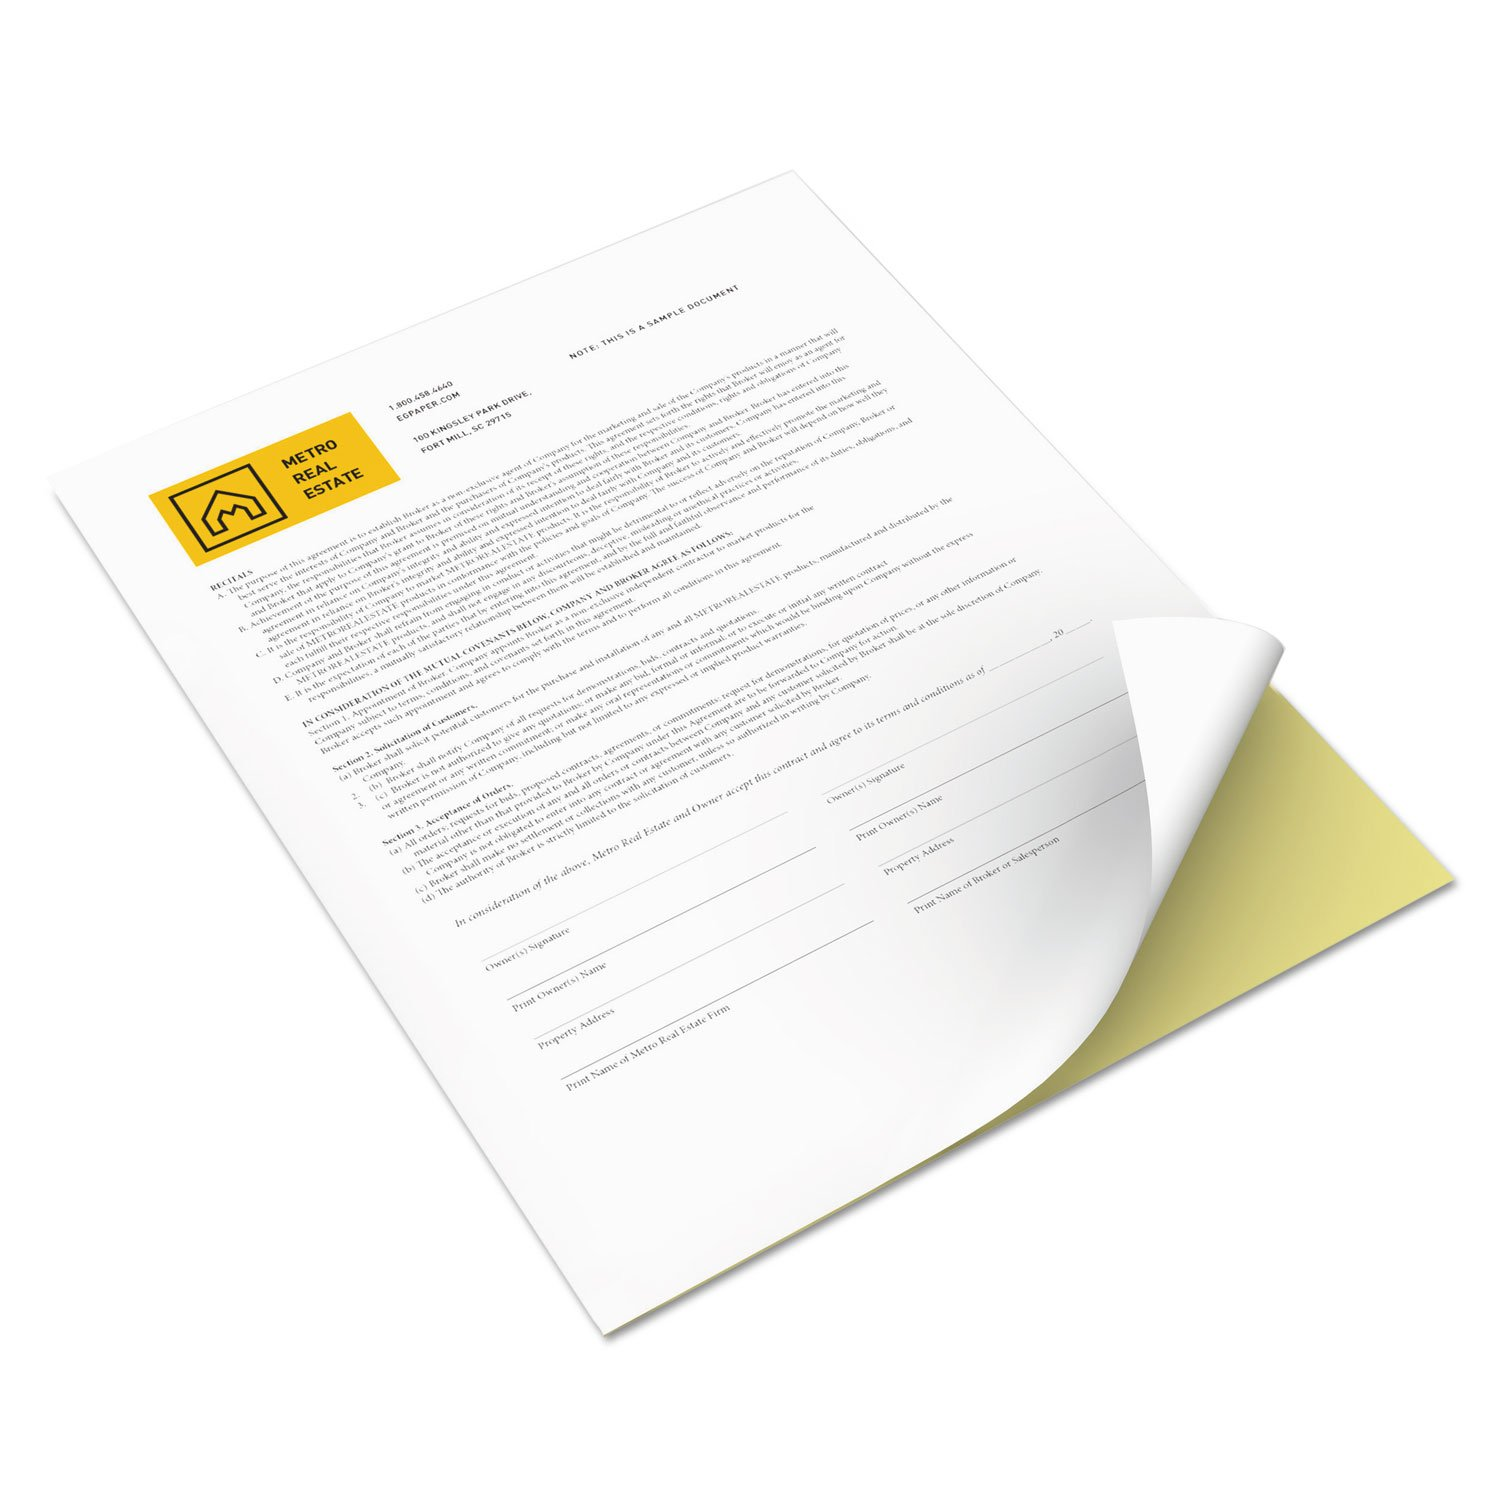 Xerox 3R12420 Revolution Digital Carbonless Paper, 8 1/2 x 11, White/Canary, 5,000 Sheets/CT by Xerox